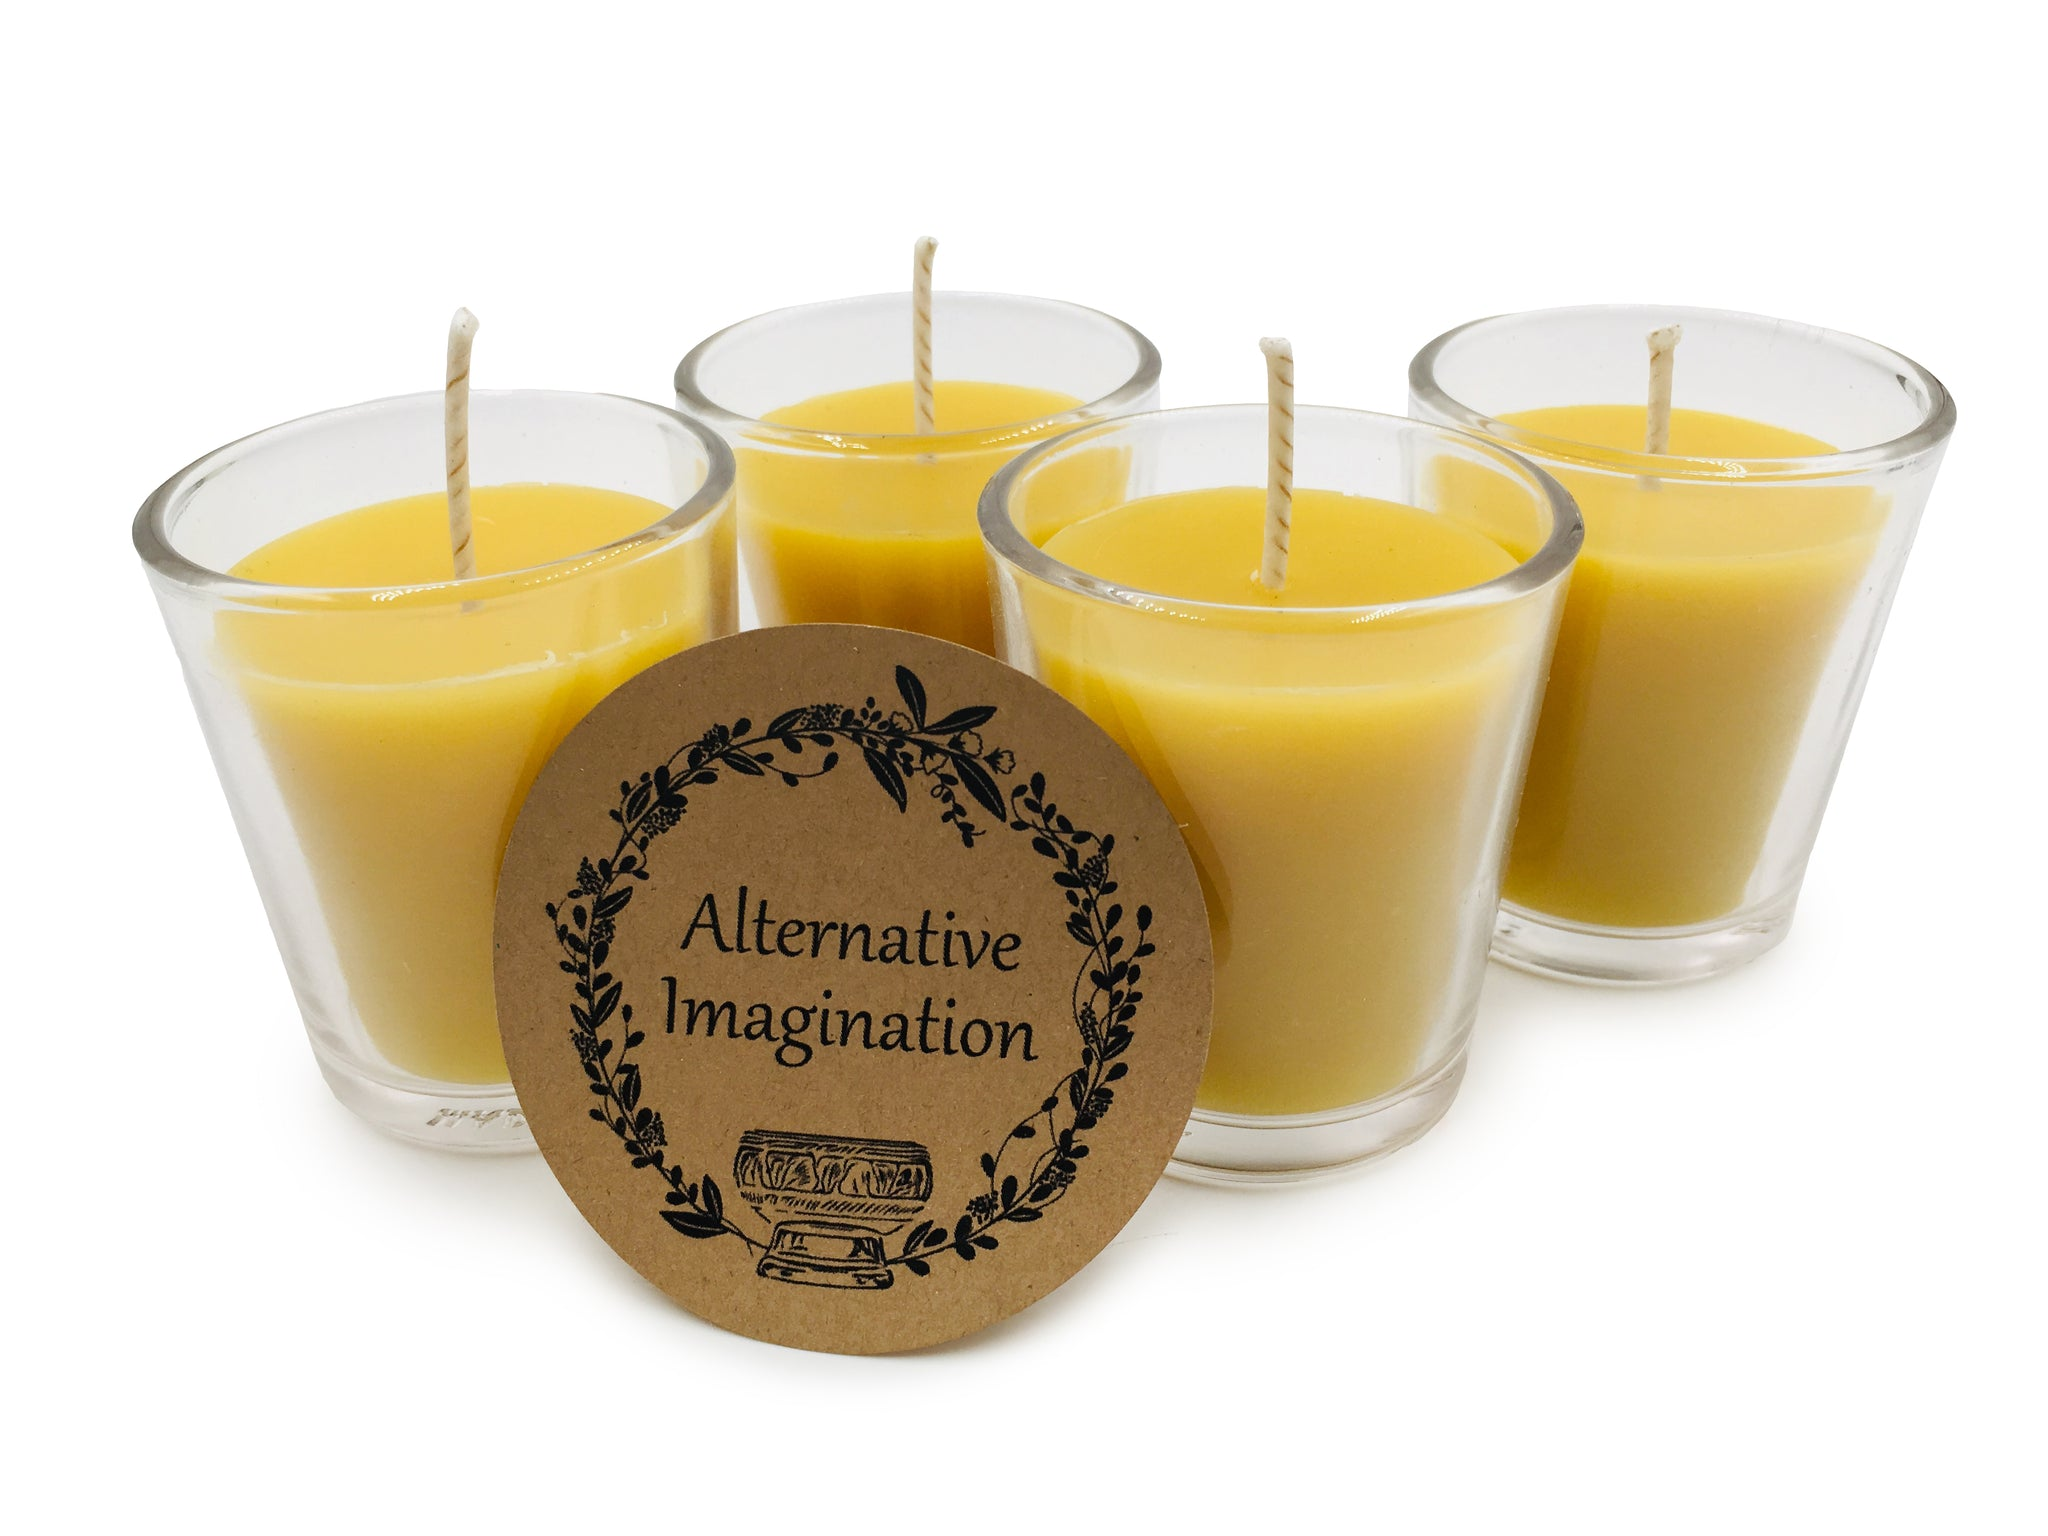 100% Pure, Natural Beeswax Votive Candles in Glass Holders - Pack of 4